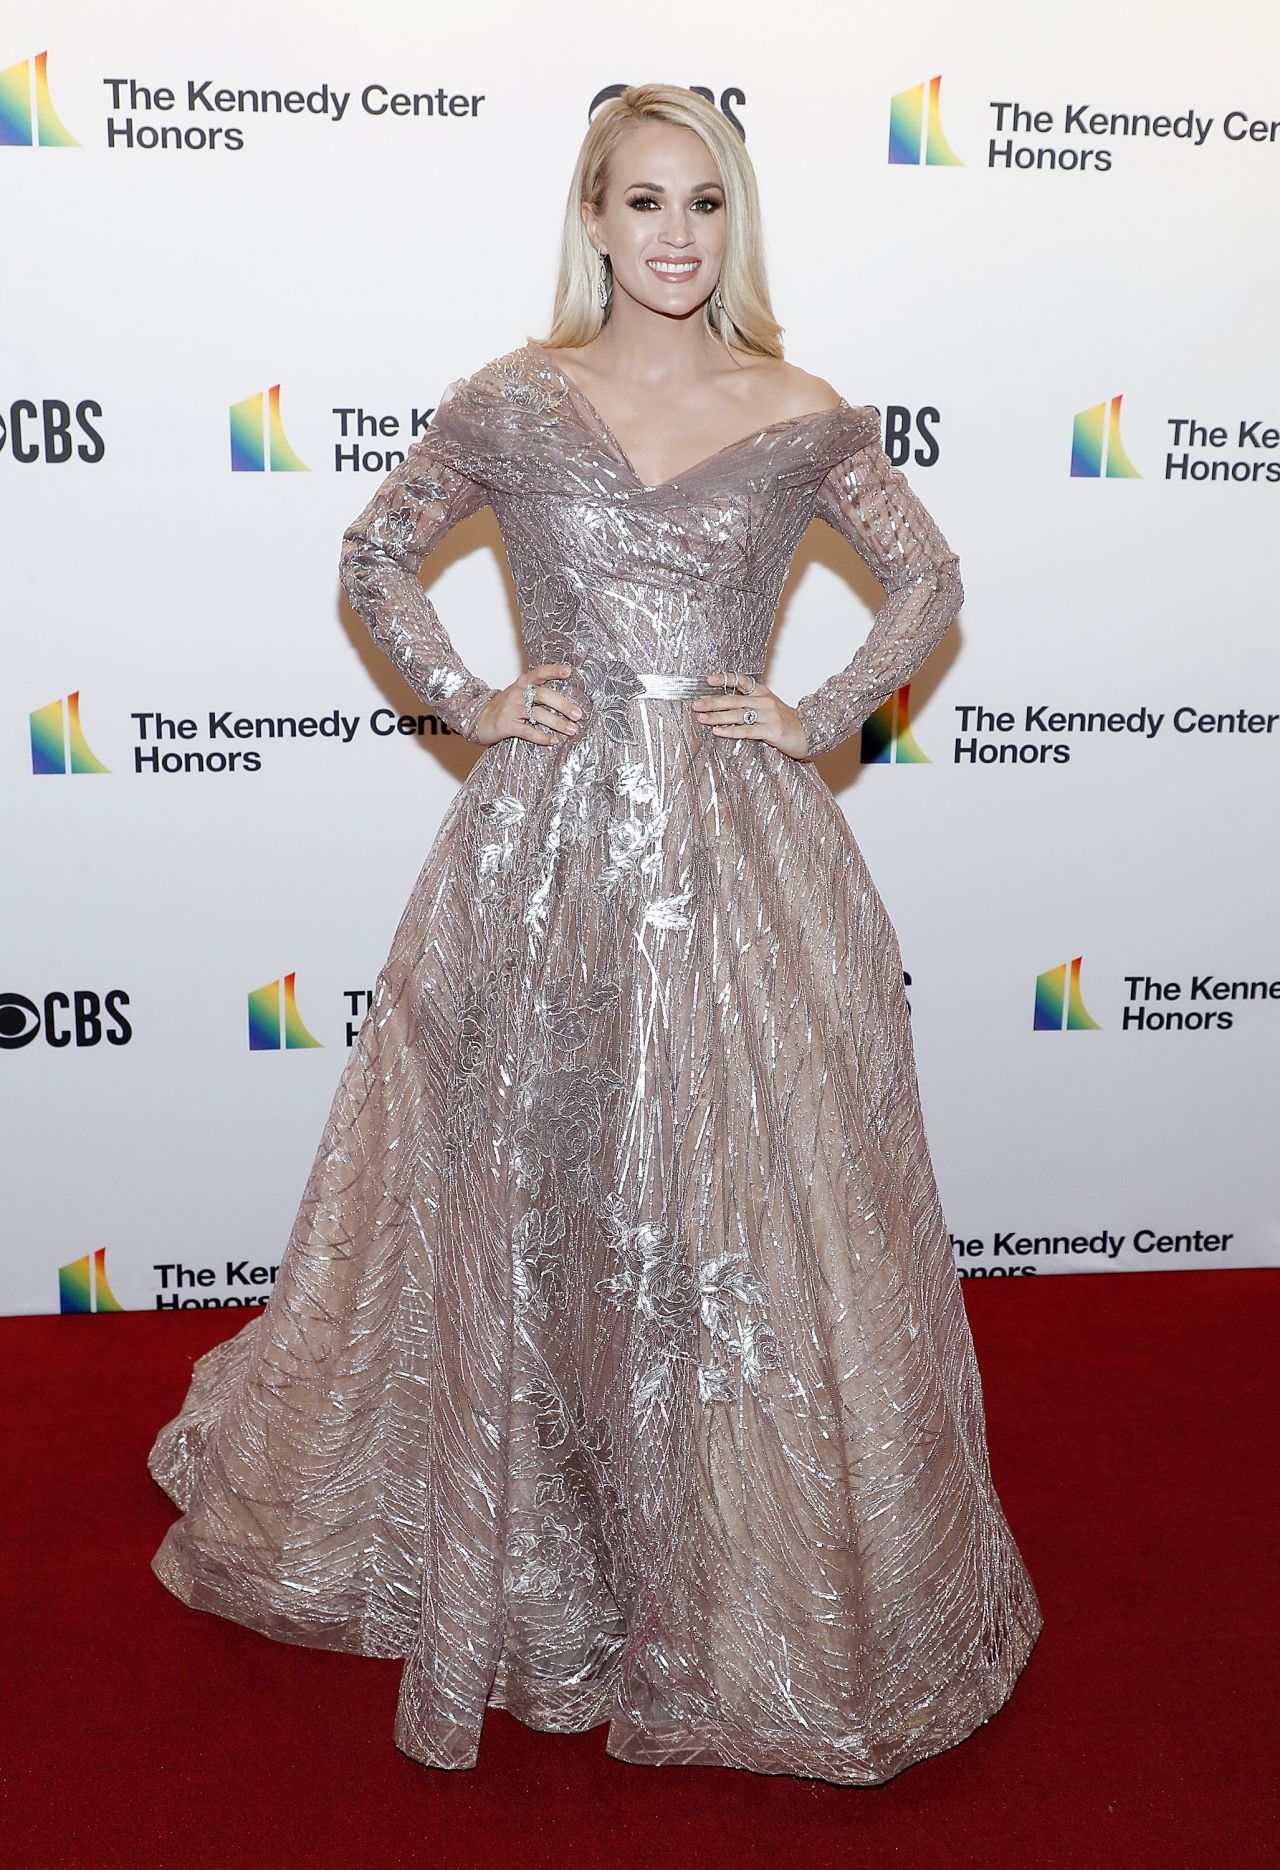 carrie-underwood-in-fouad-sarkis-2019-kennedy-center-honors-in-washington-dc